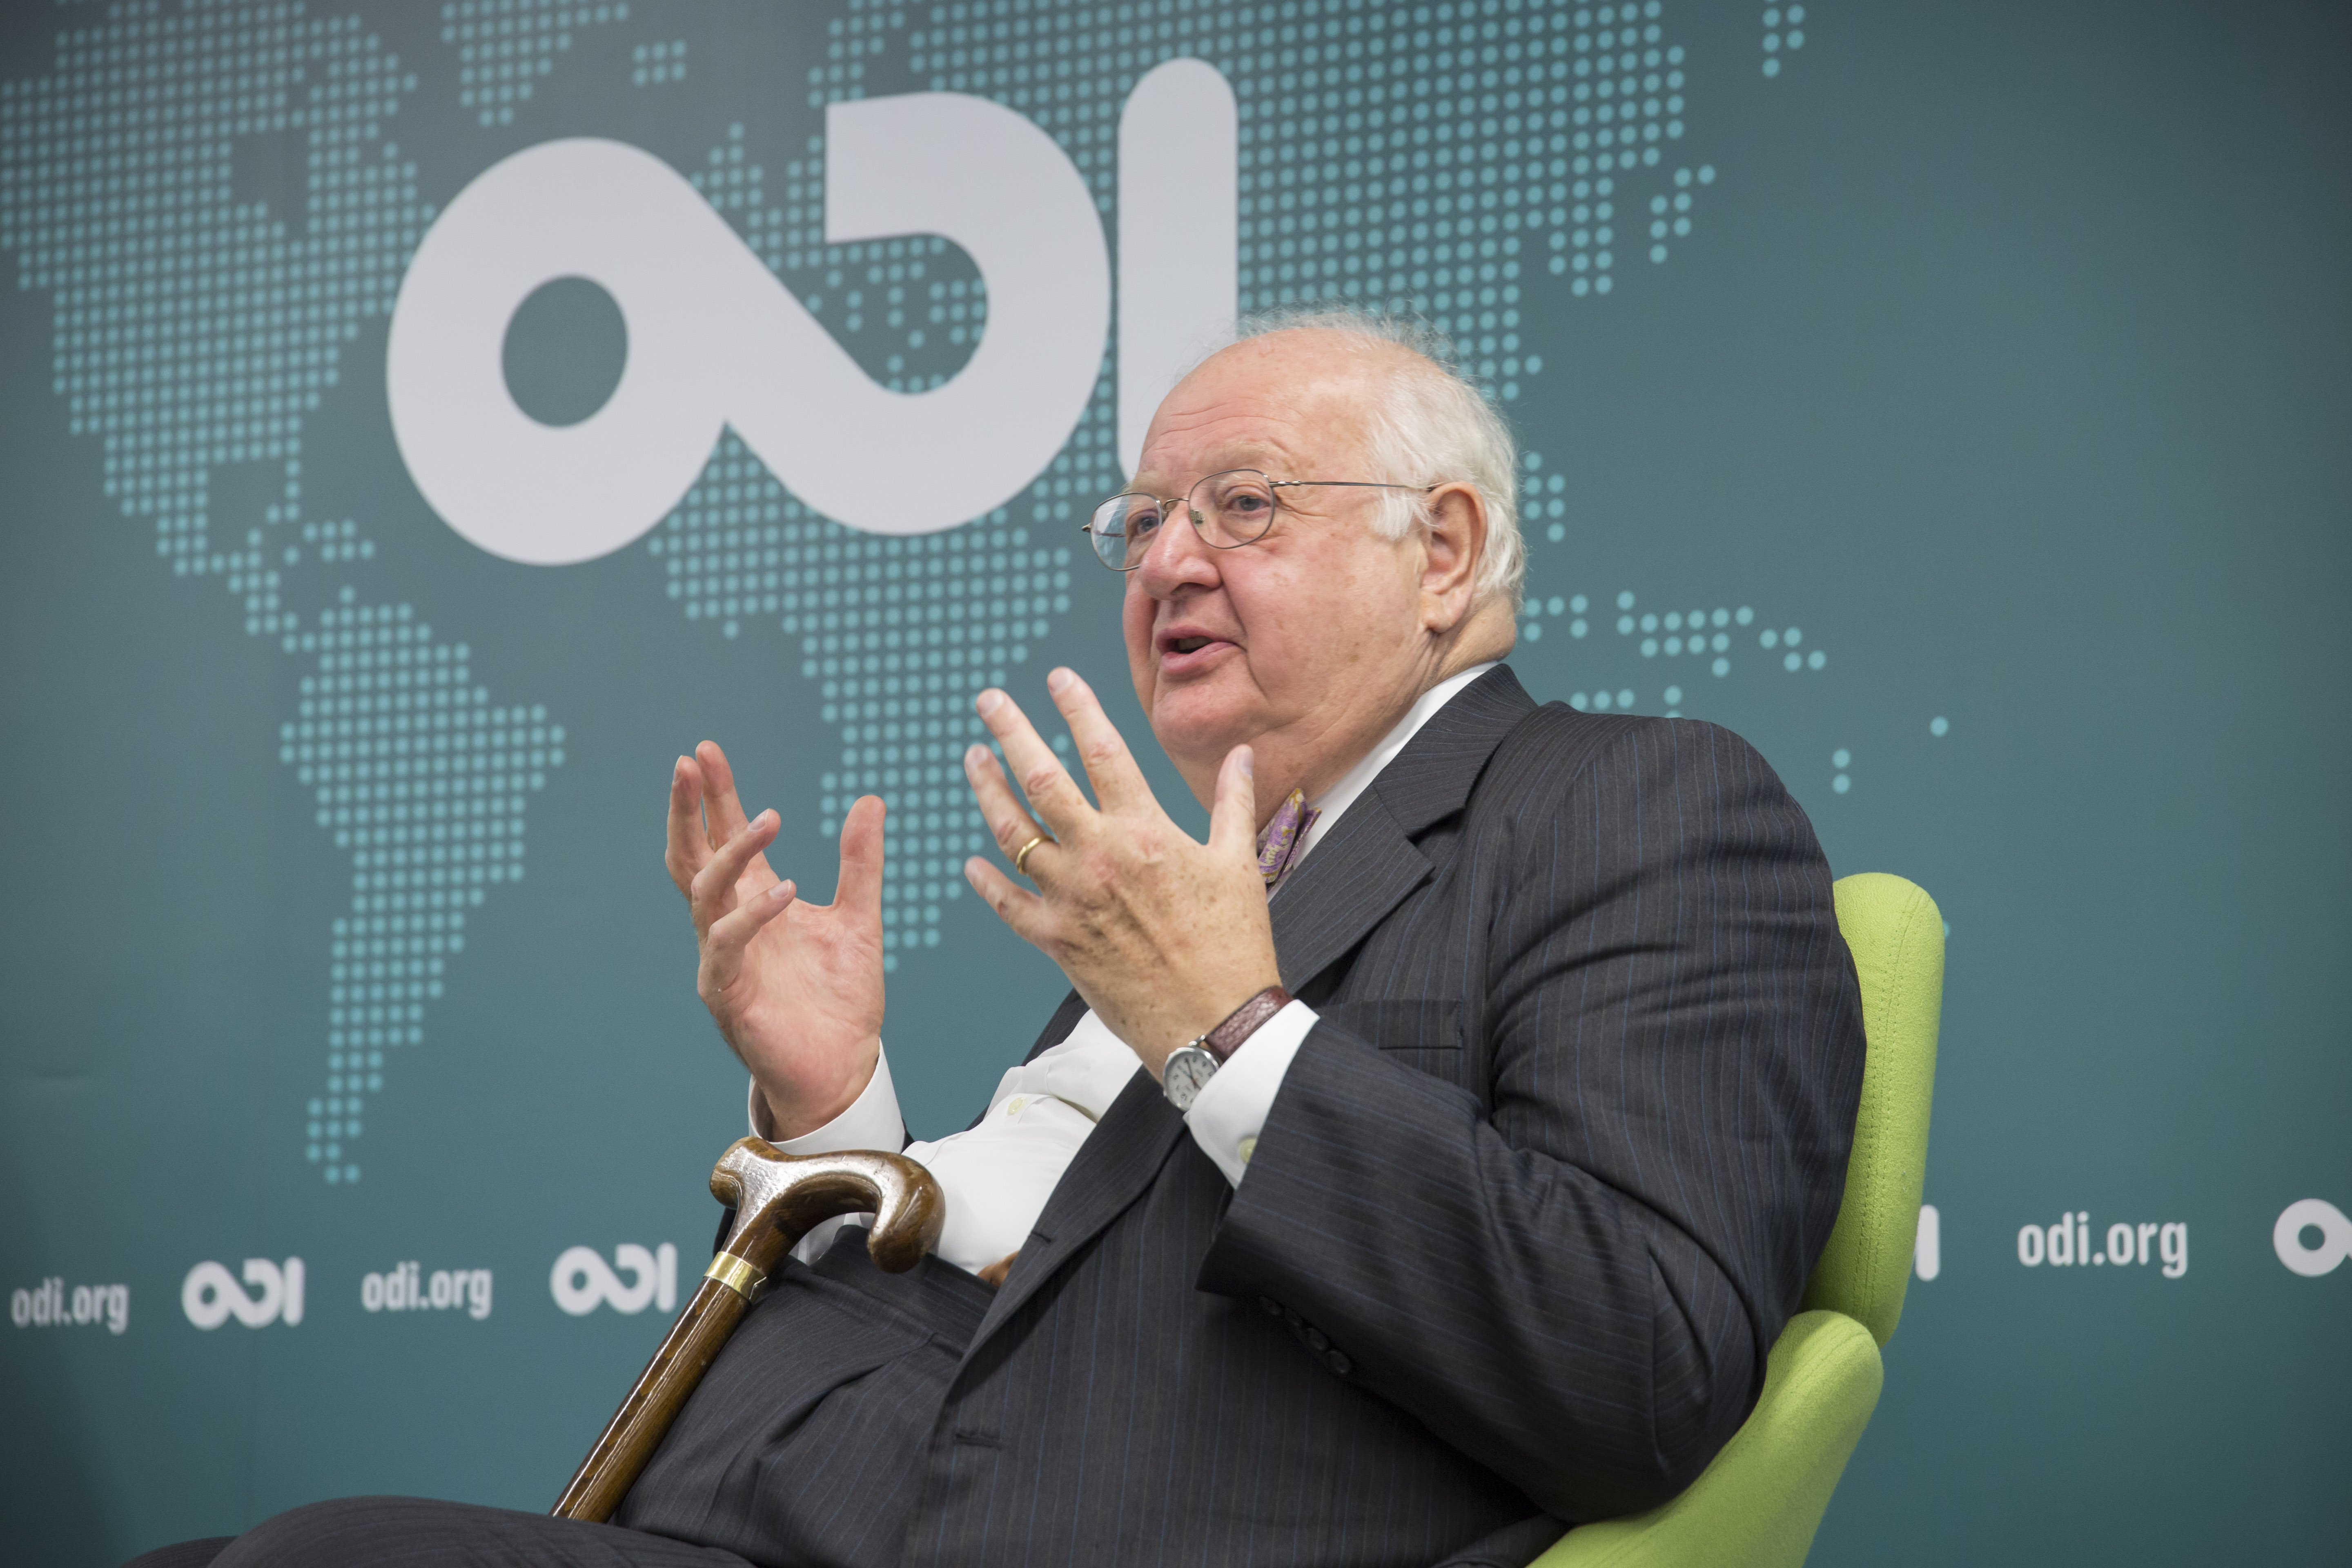 Winner of the 2015 Nobel prize in economics, Sir Angus Deaton, in conversation at ODI